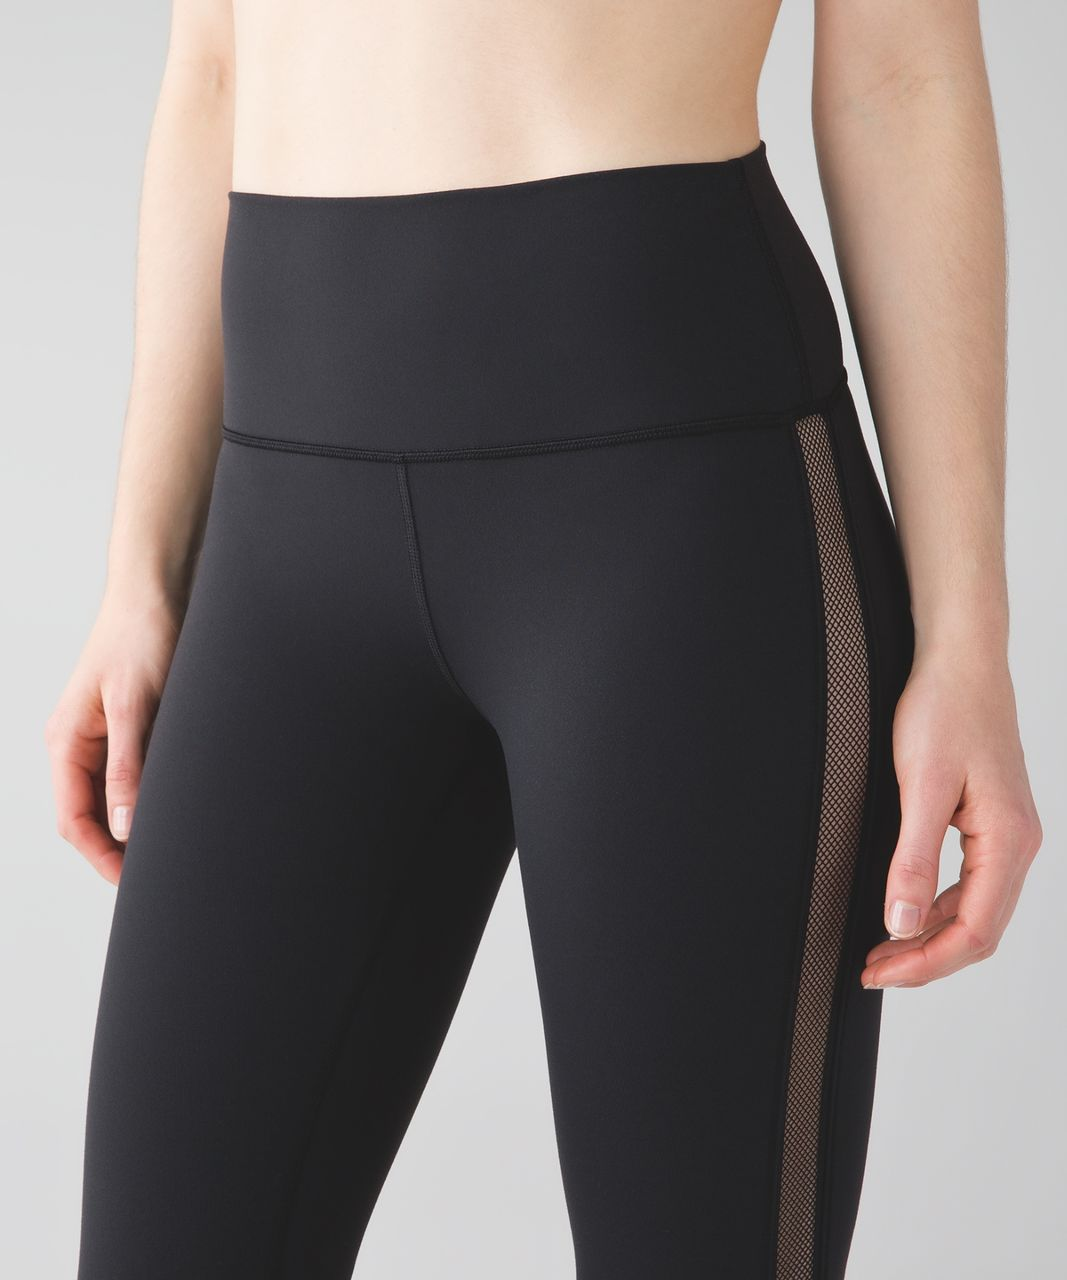 Lululemon High Times Pant (Wing Mesh) *Full-On Luon - Black